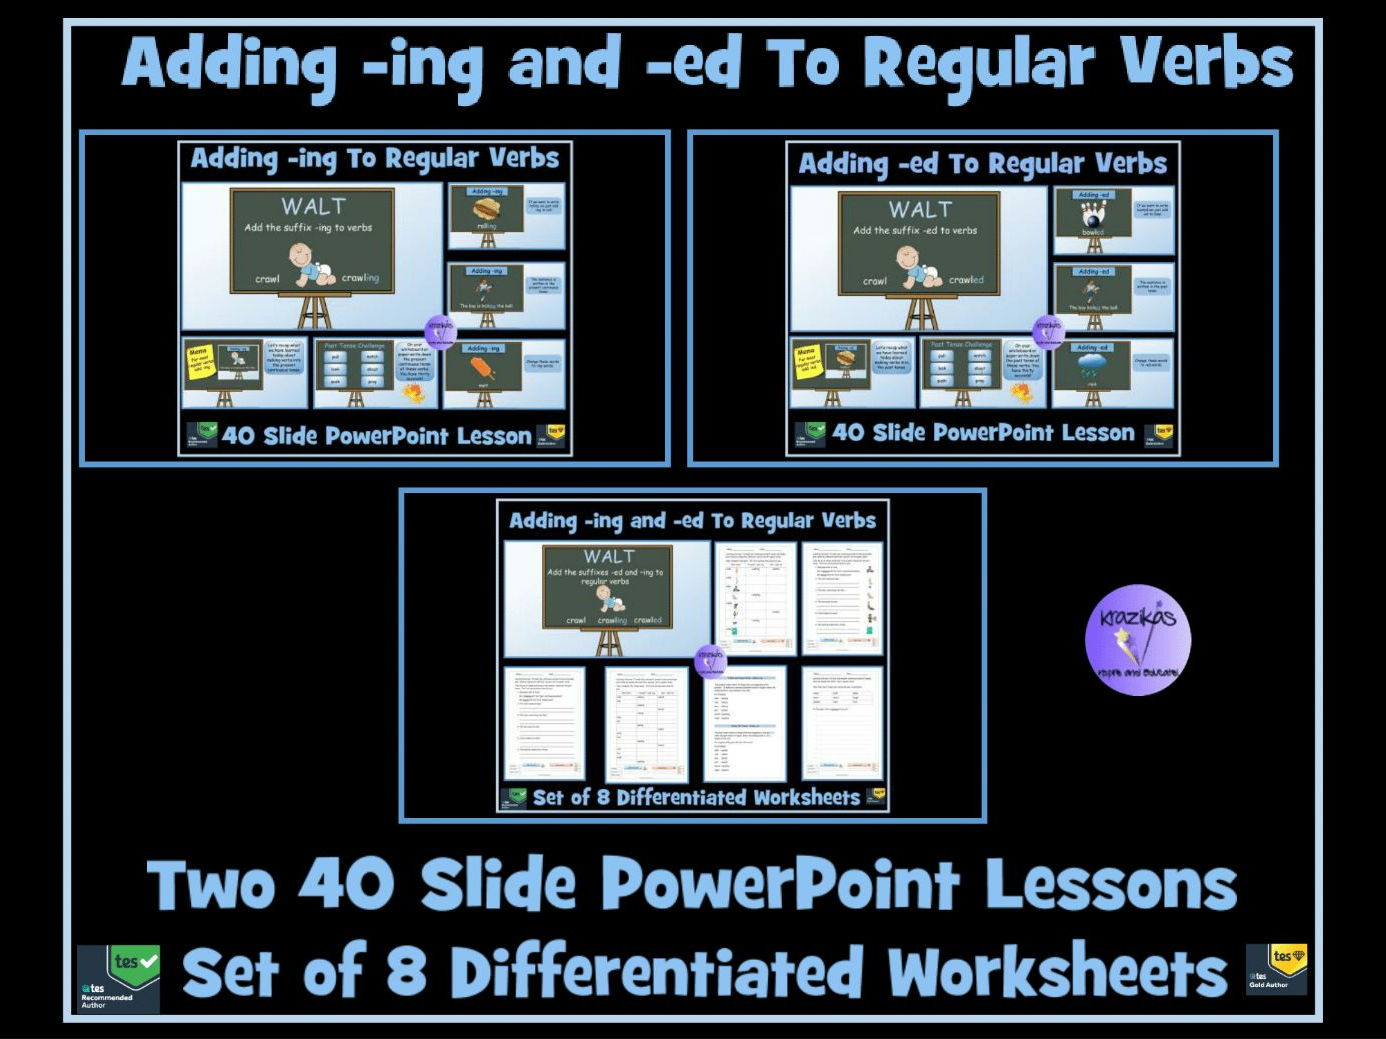 Adding -ing and -ed To Regular Verbs - Two PowerPoint Lessons and Set of 8 Differentiated Worksheets